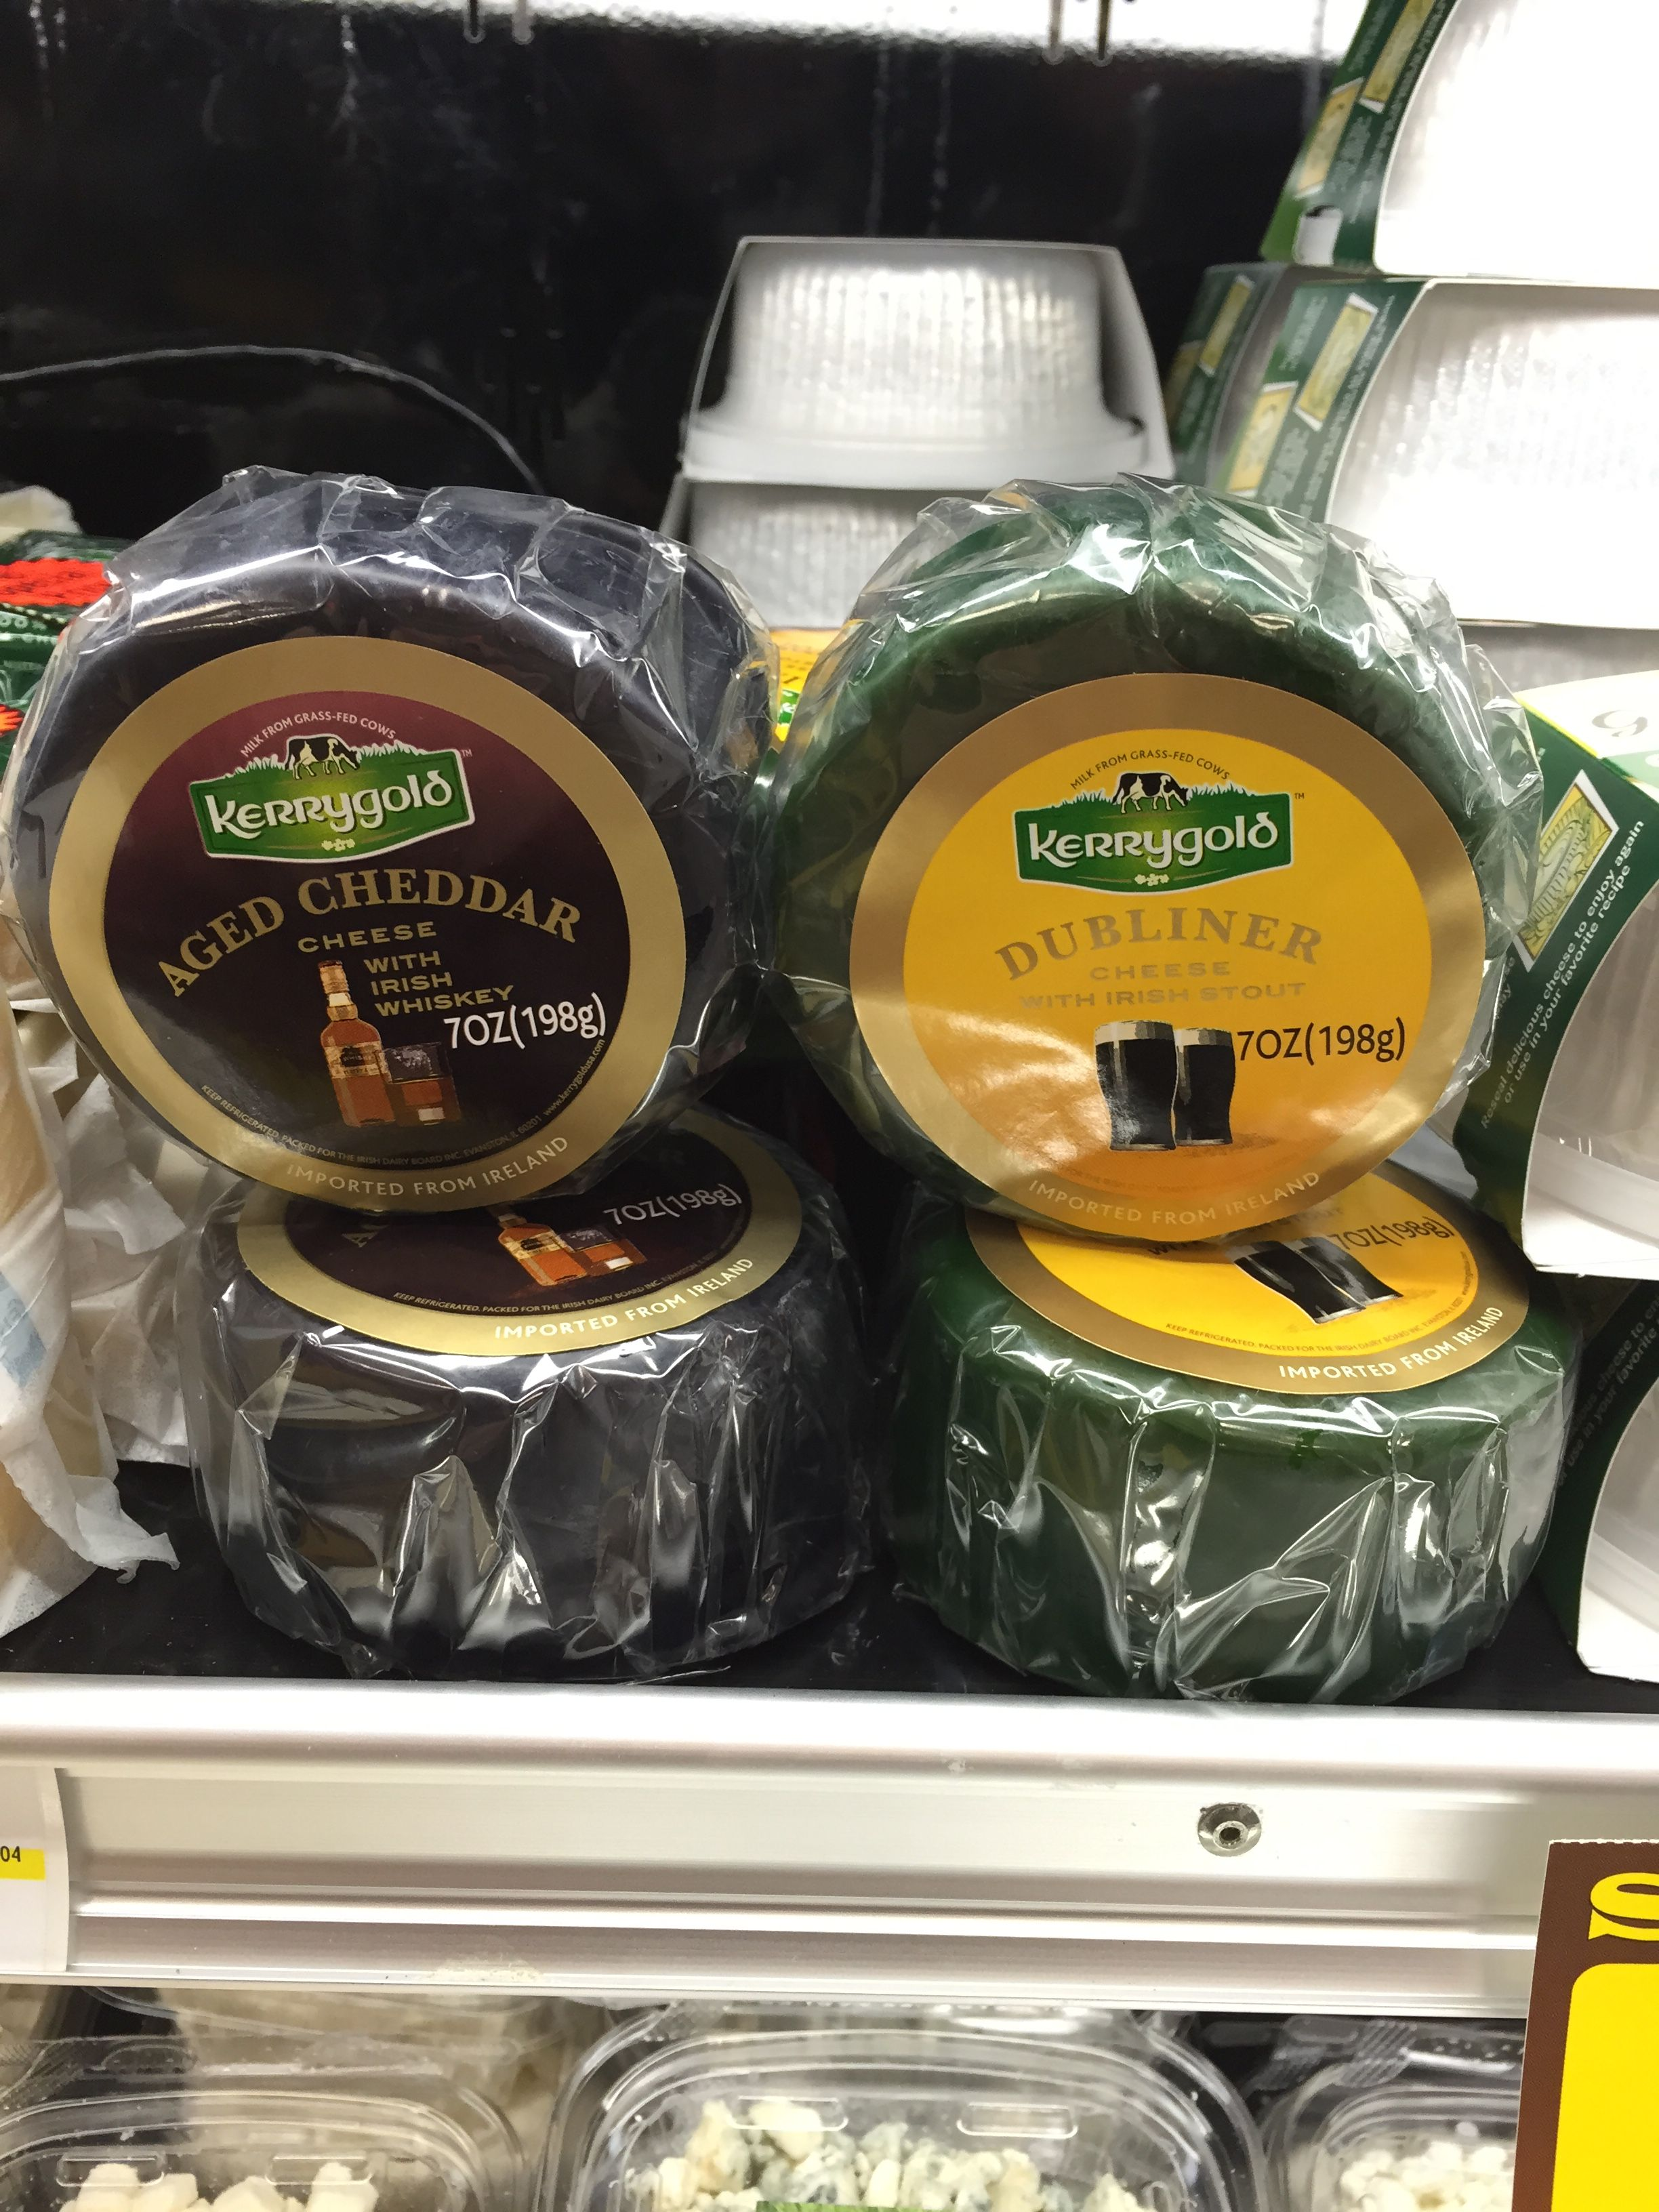 Perfect cheeses to pair with corned beef this holiday! #kerrygold #cheese